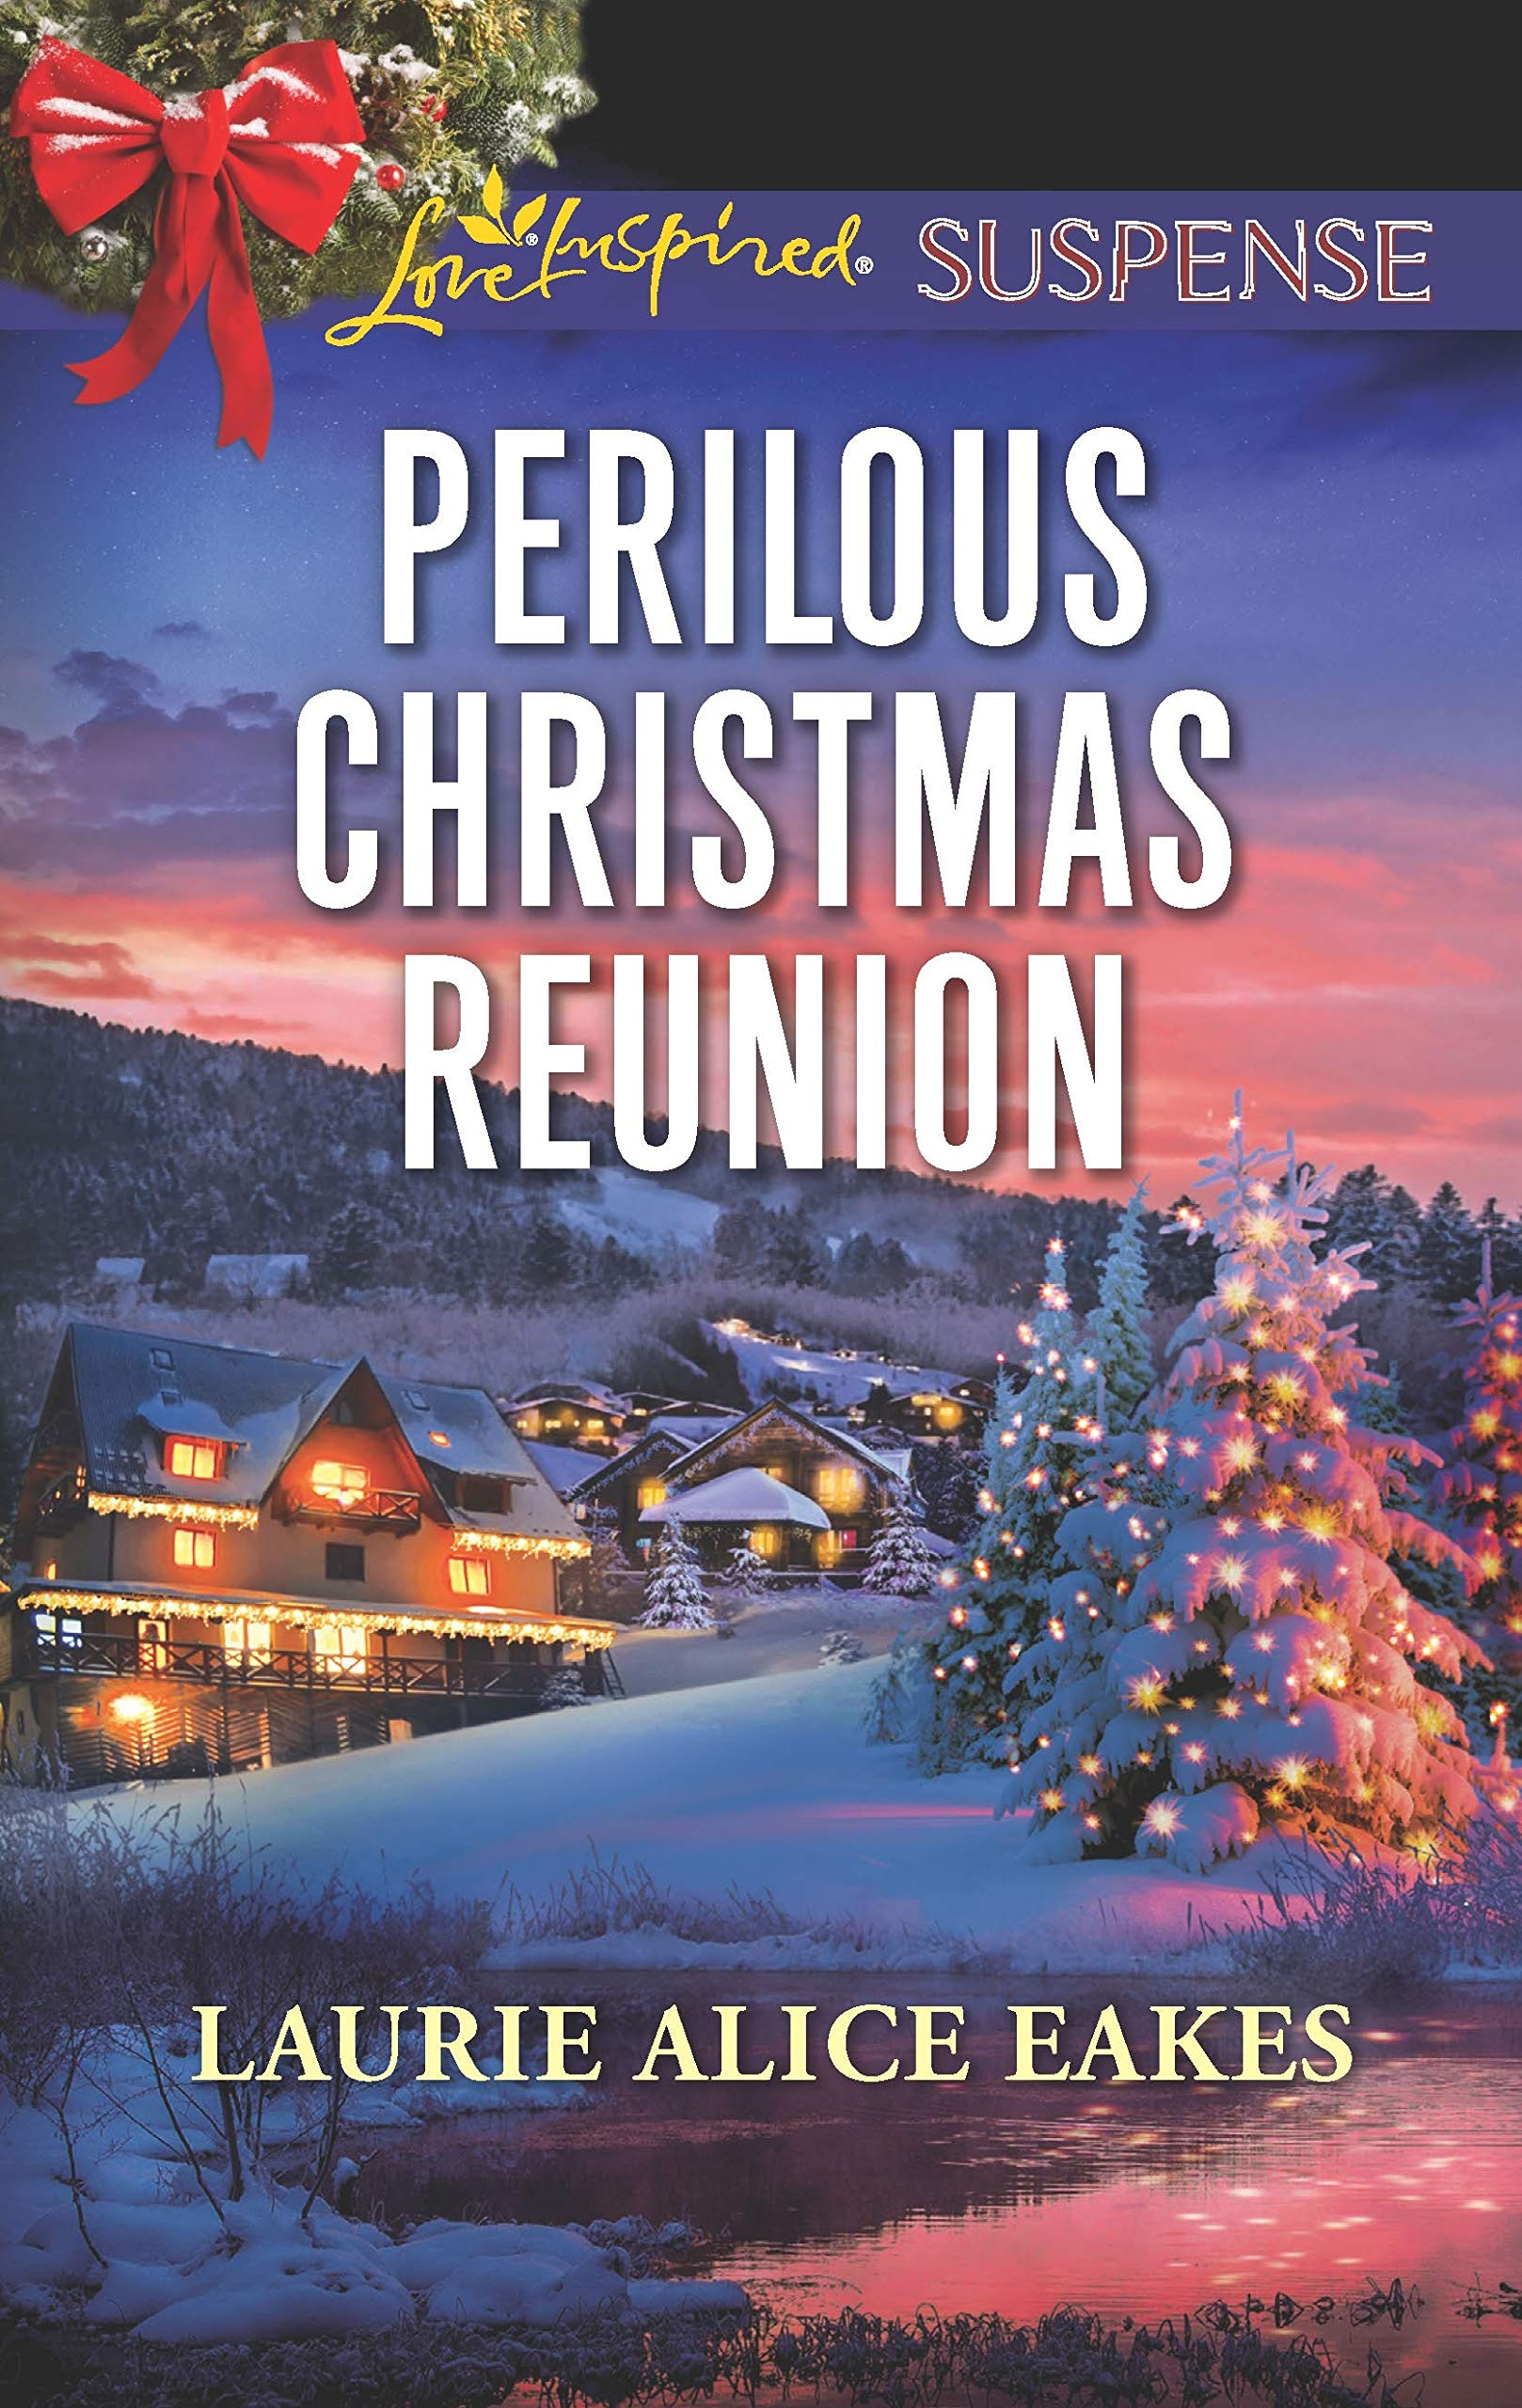 Image result for perious christmas reunion laurie alice eakes